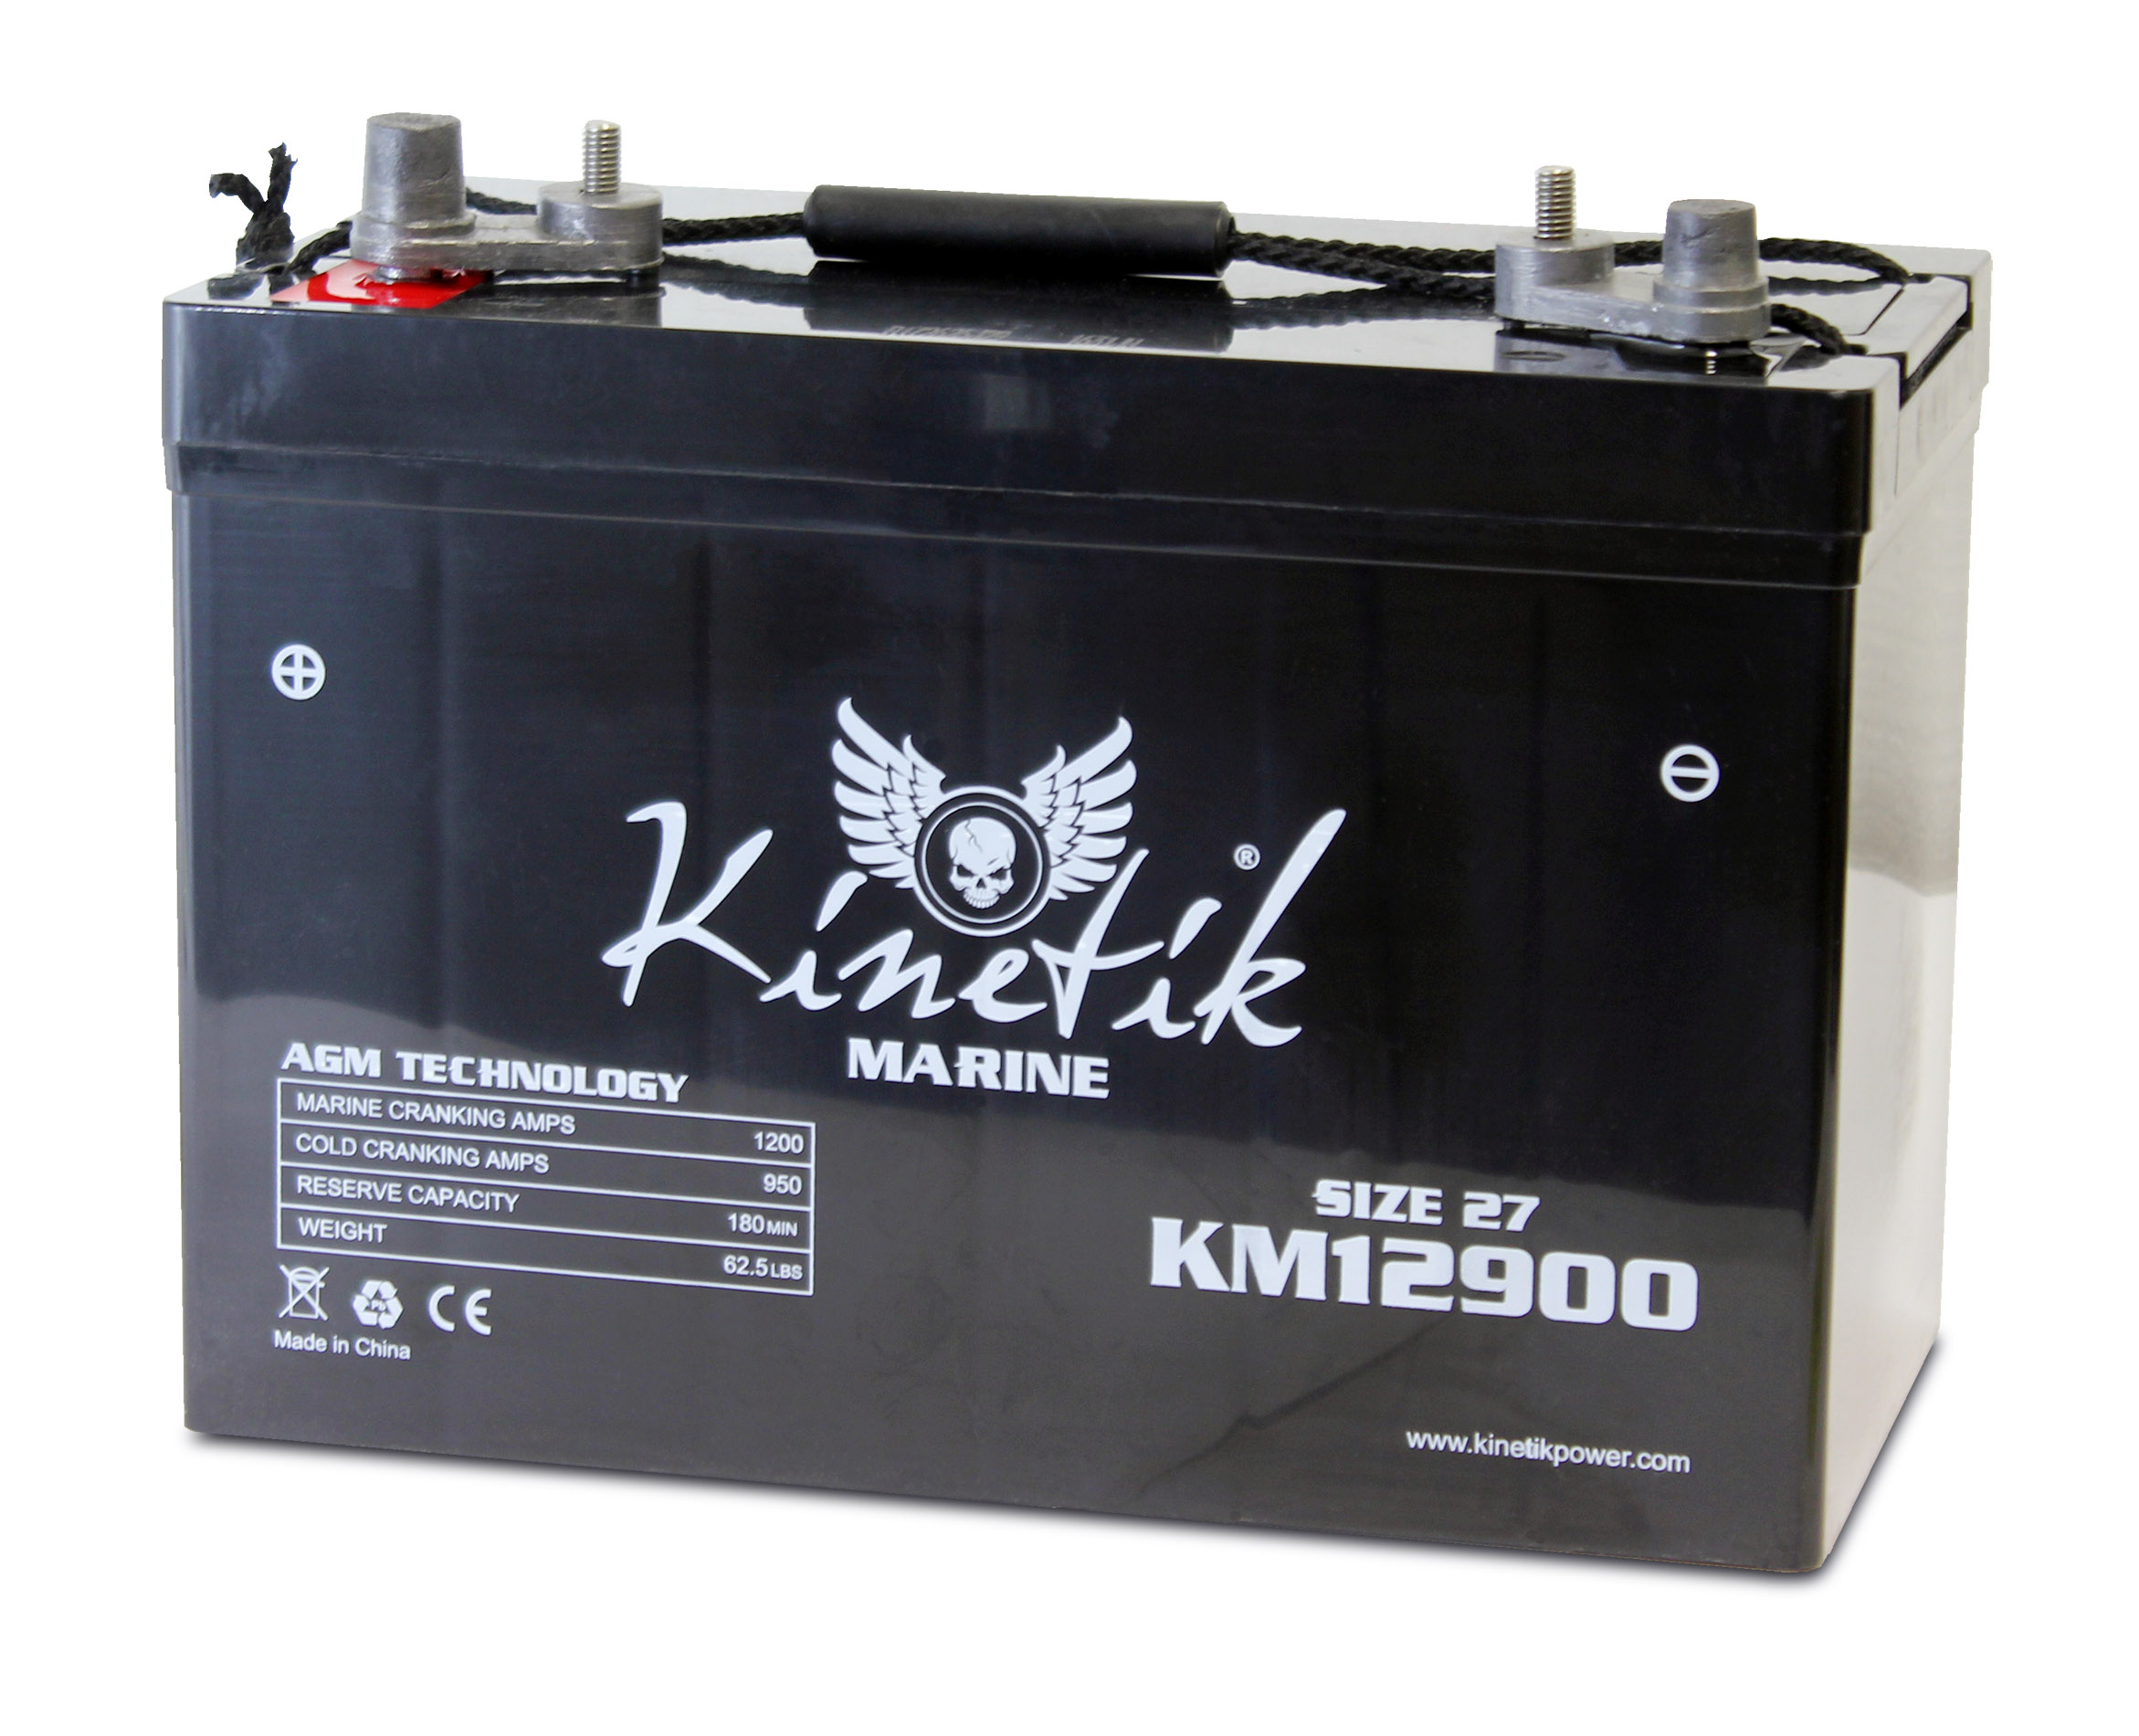 12v 90ah Group 27 Battery for The Varimax V75 Bow motor